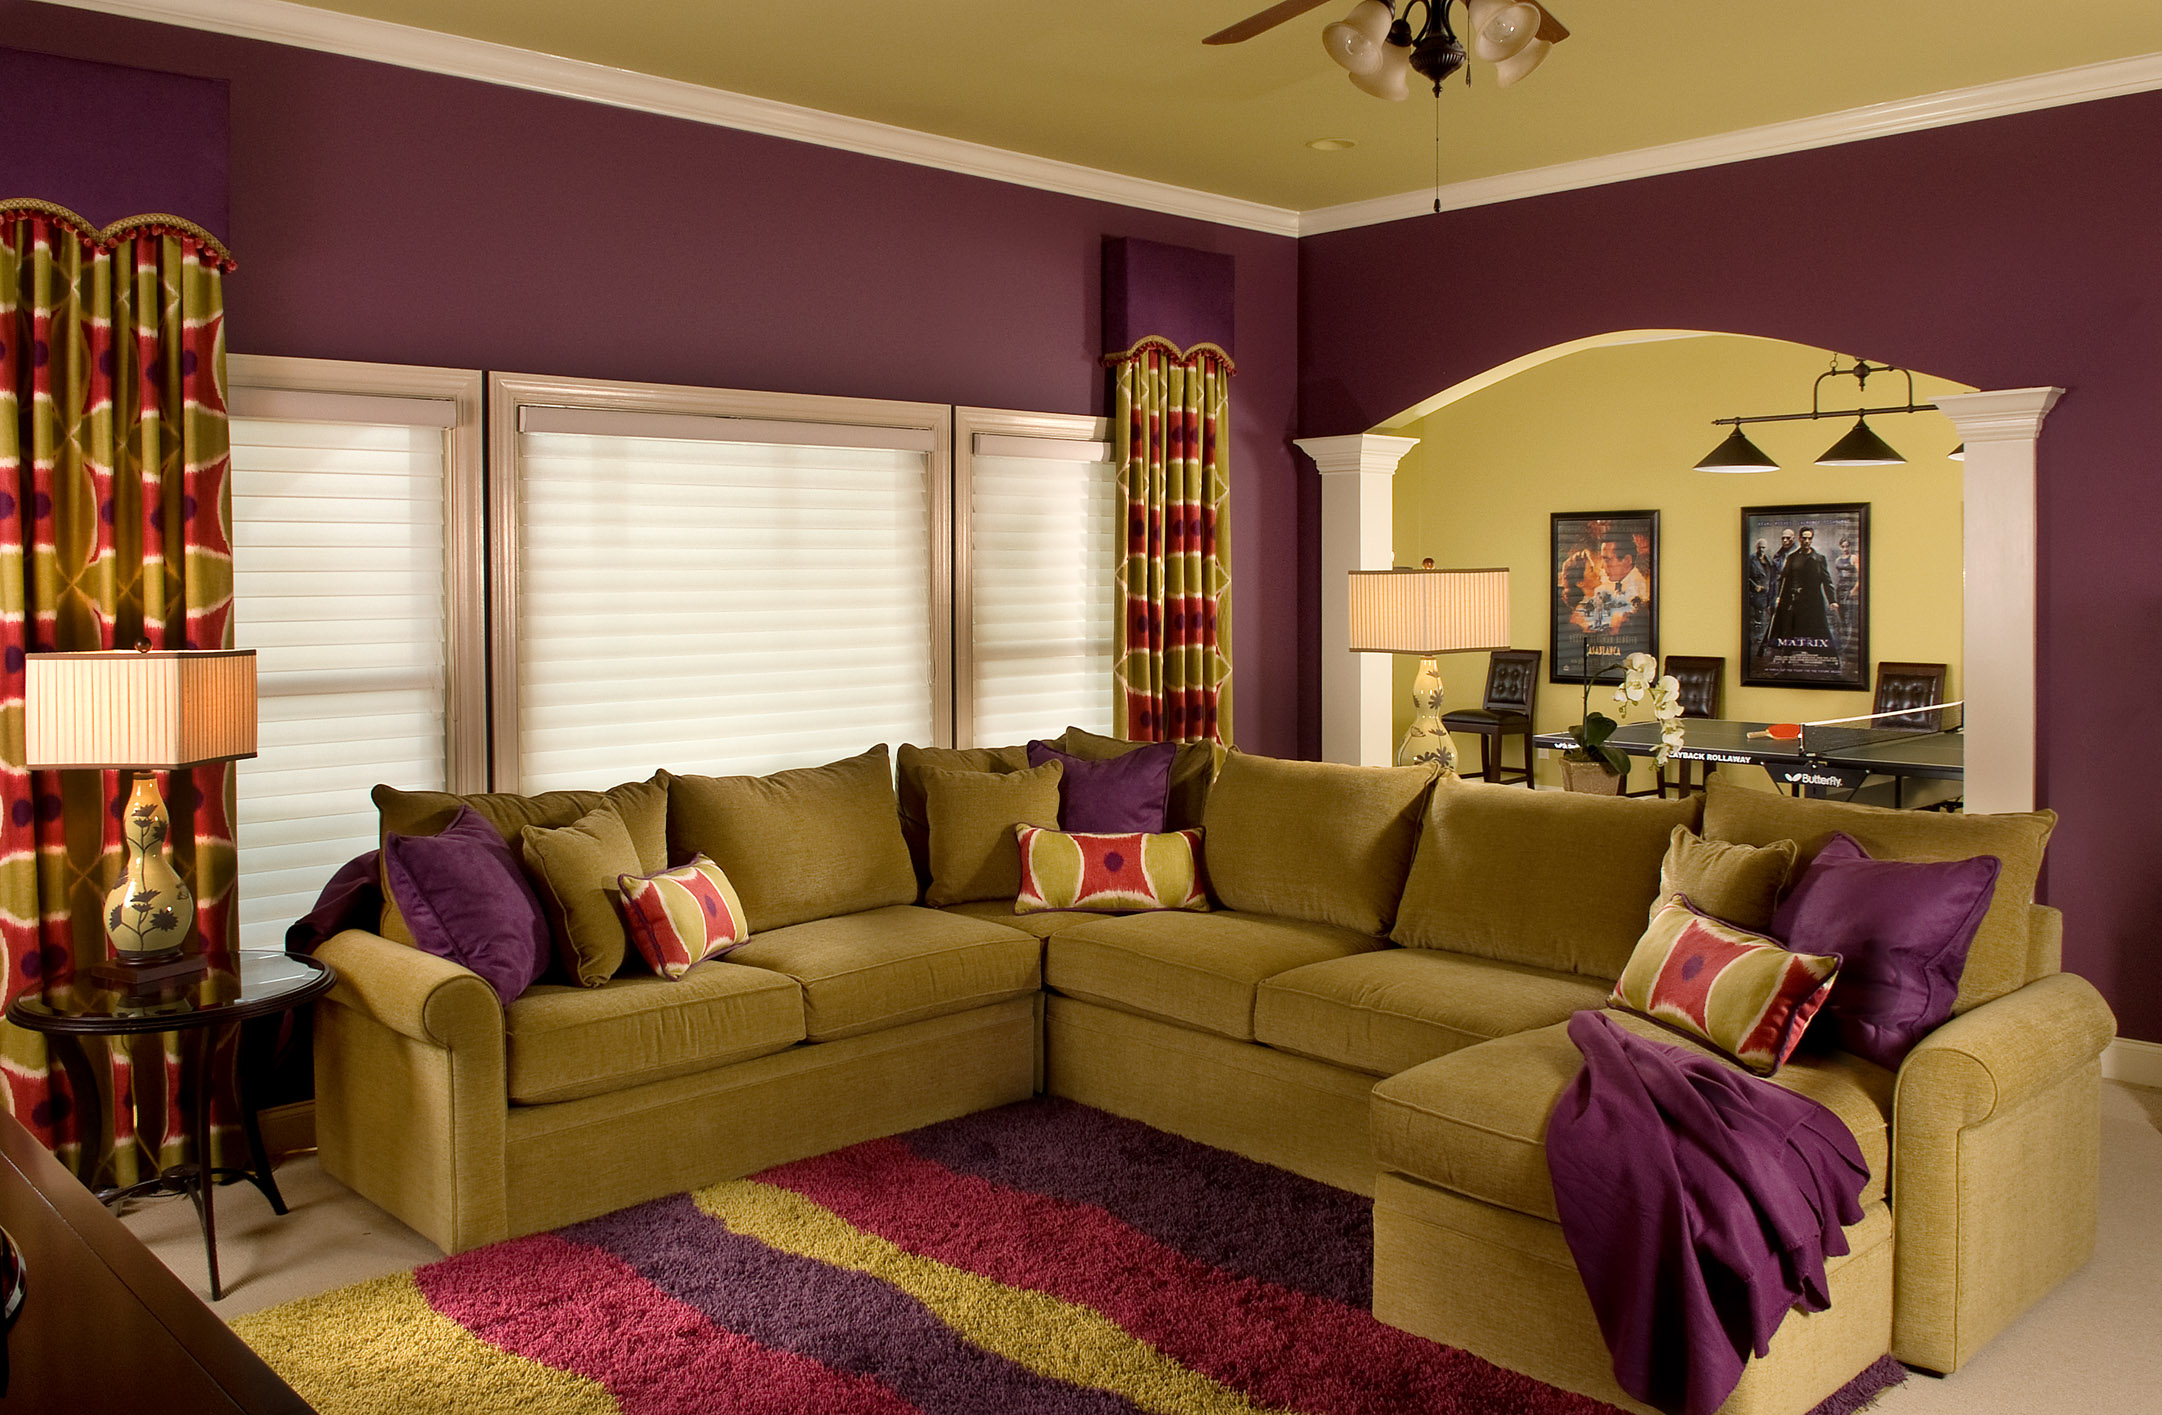 Fabulous Living Room Wall Color Schemes 2162 x 1415 · 645 kB · jpeg